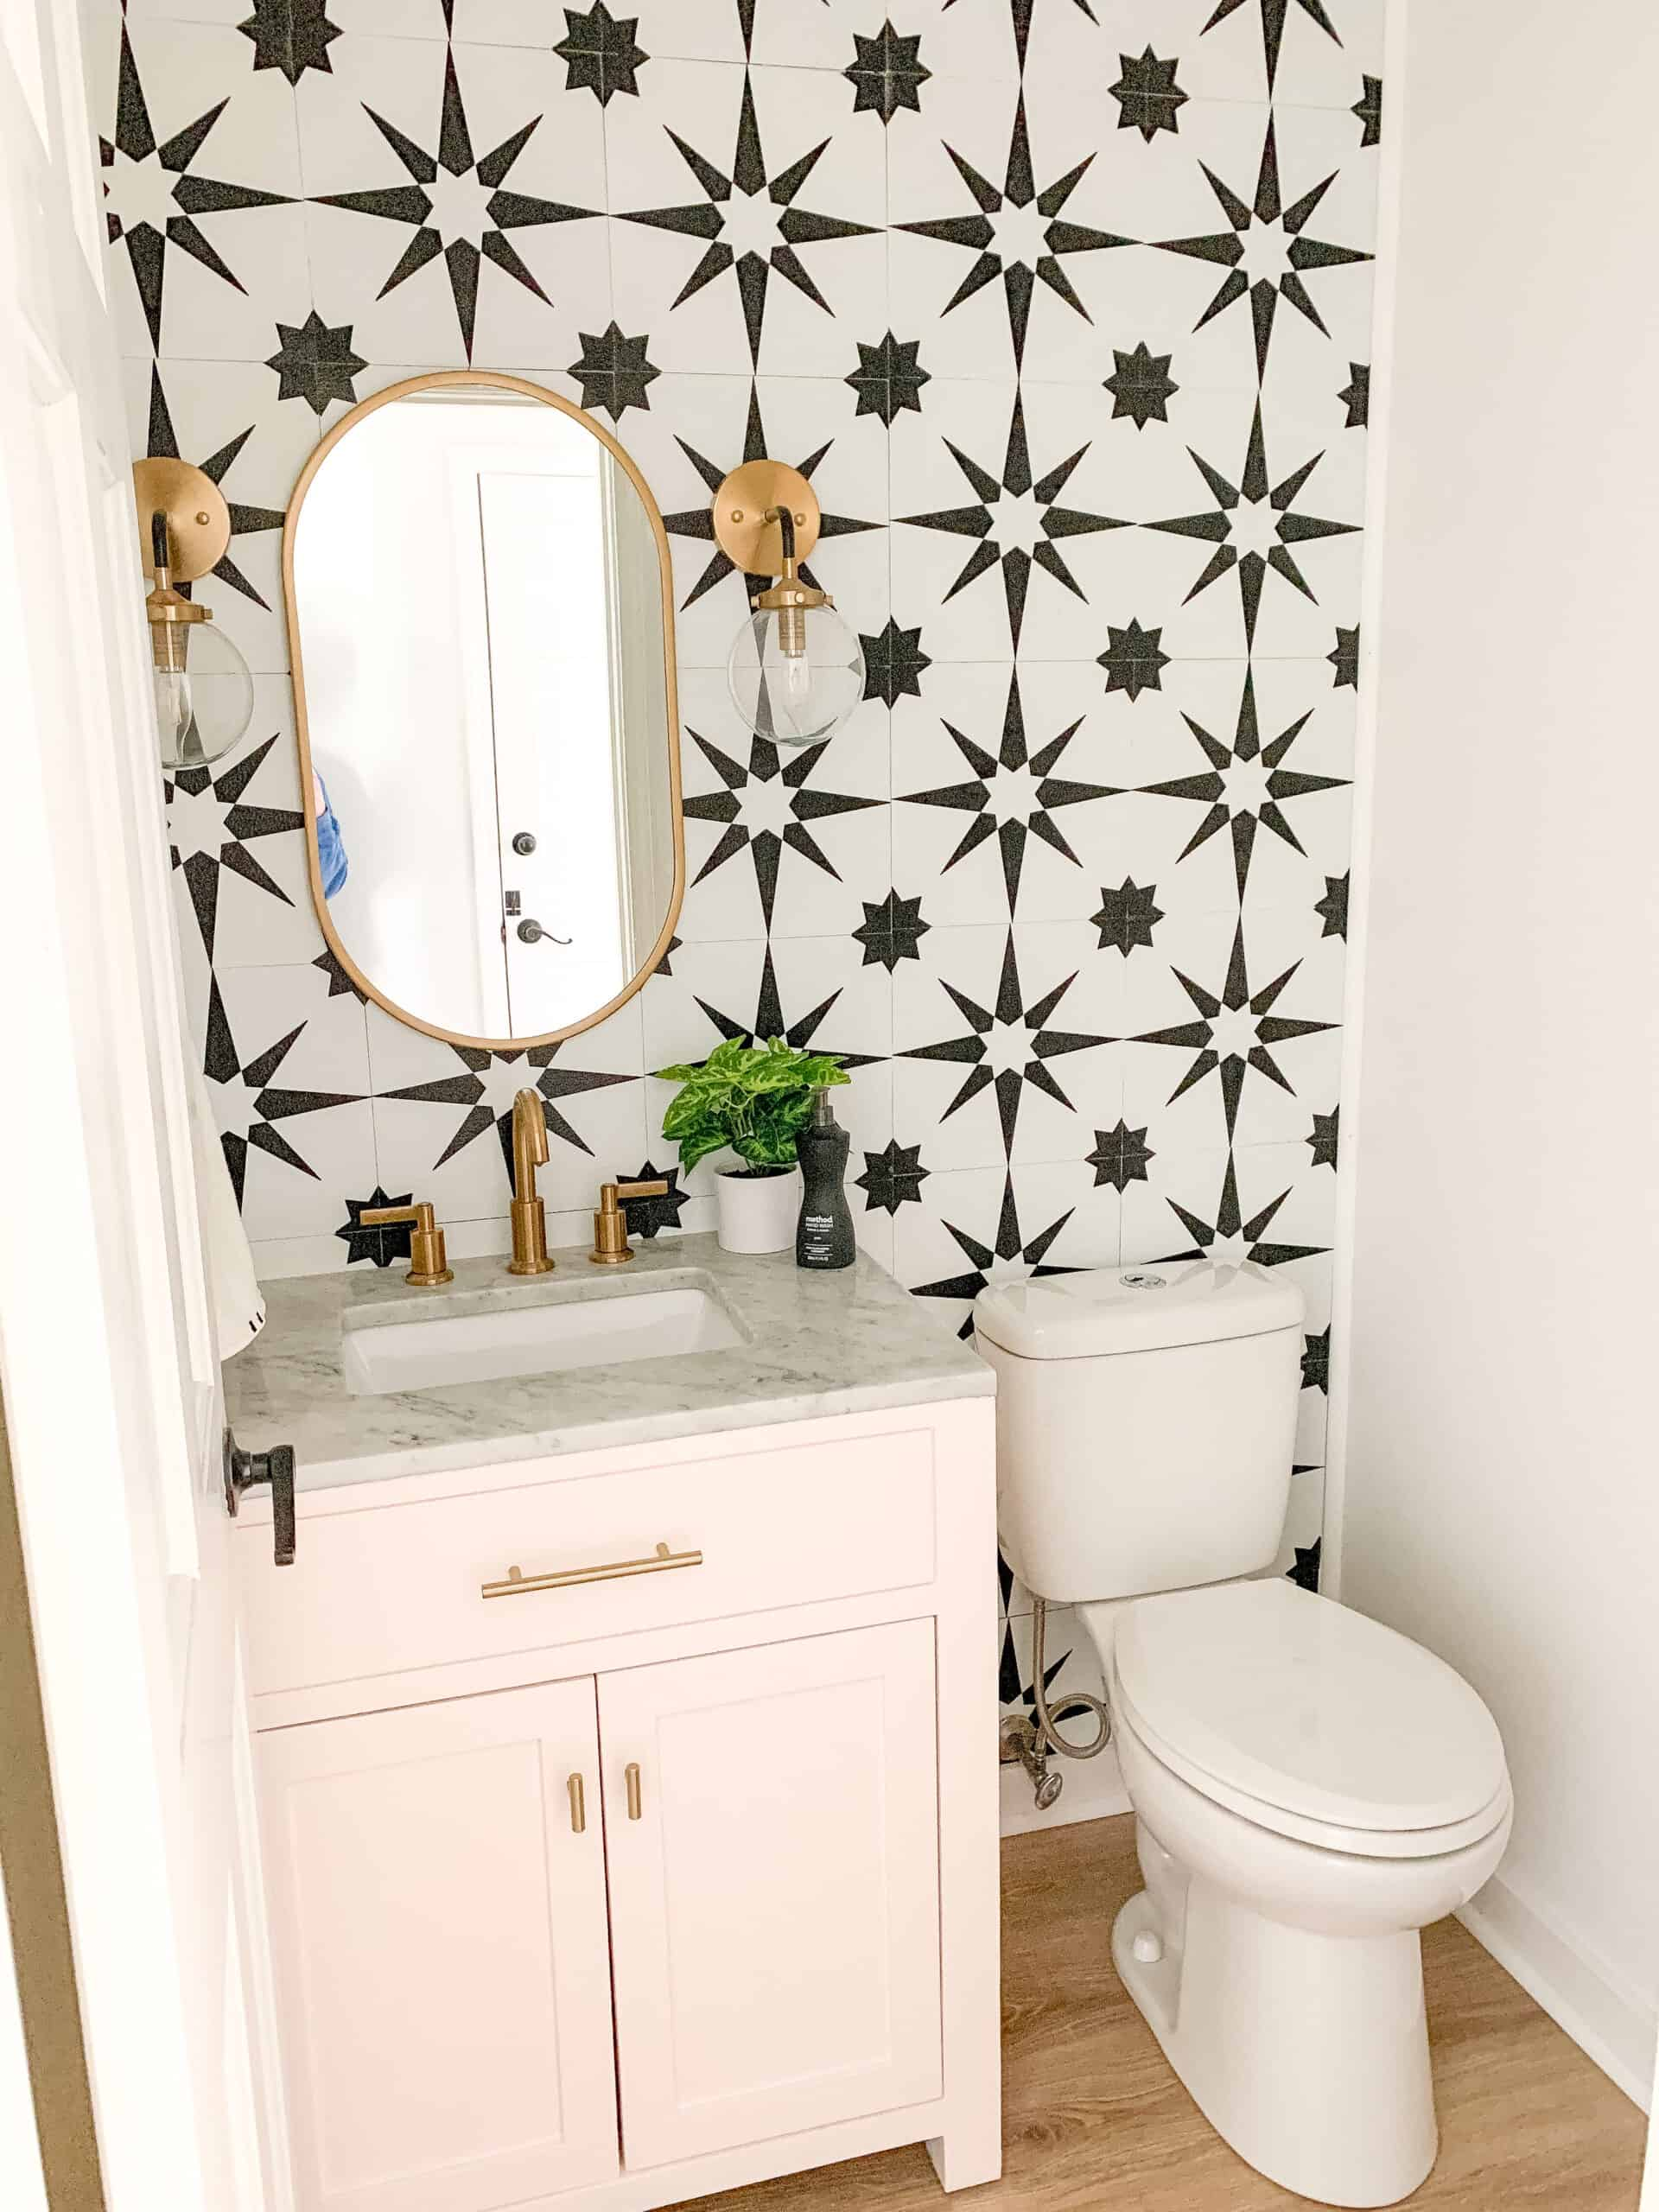 Blush pink powder room vanity with black and white tile wall